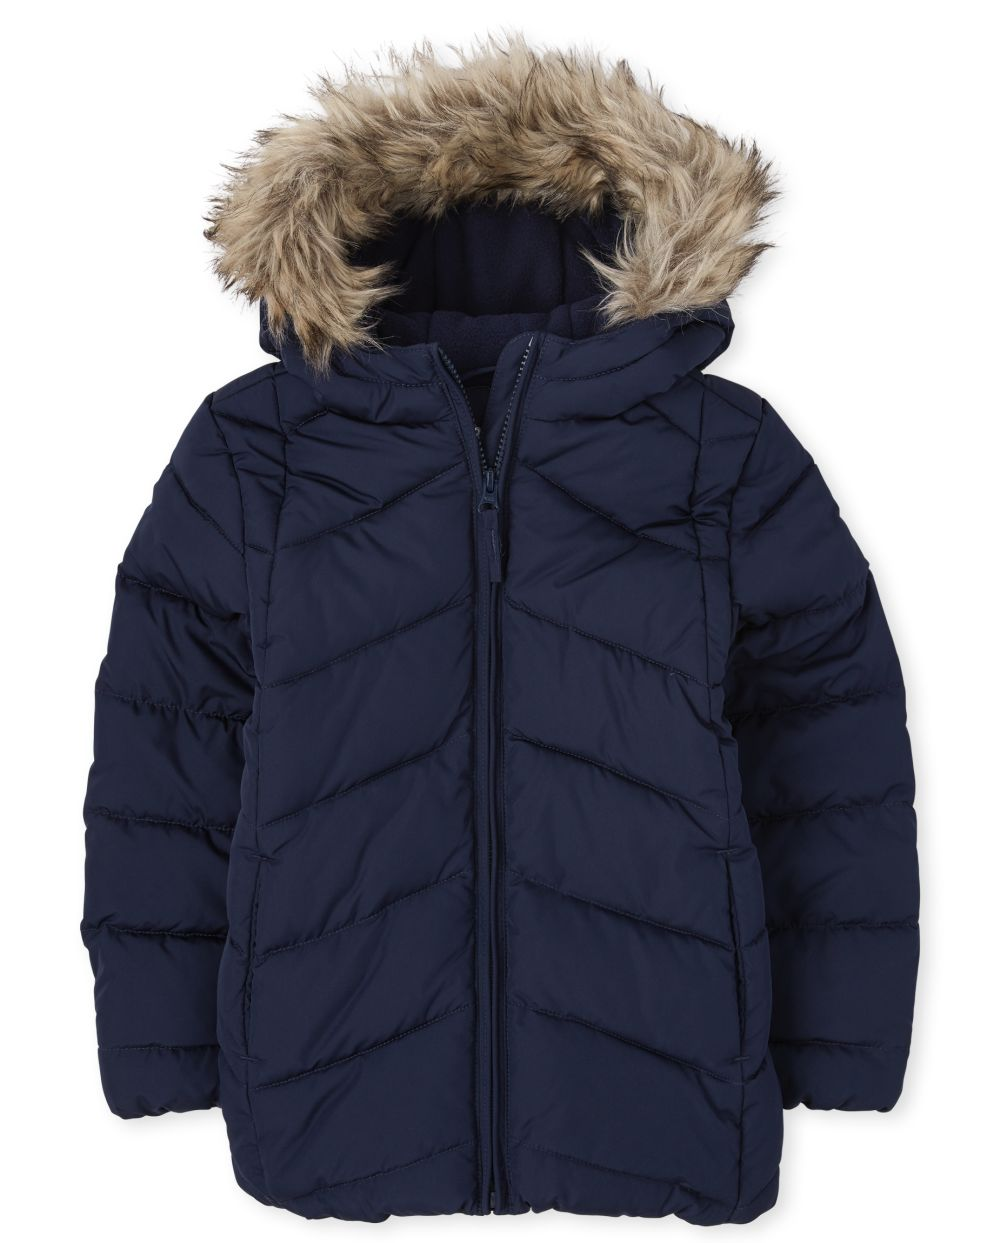 Girls Short Puffer Jacket